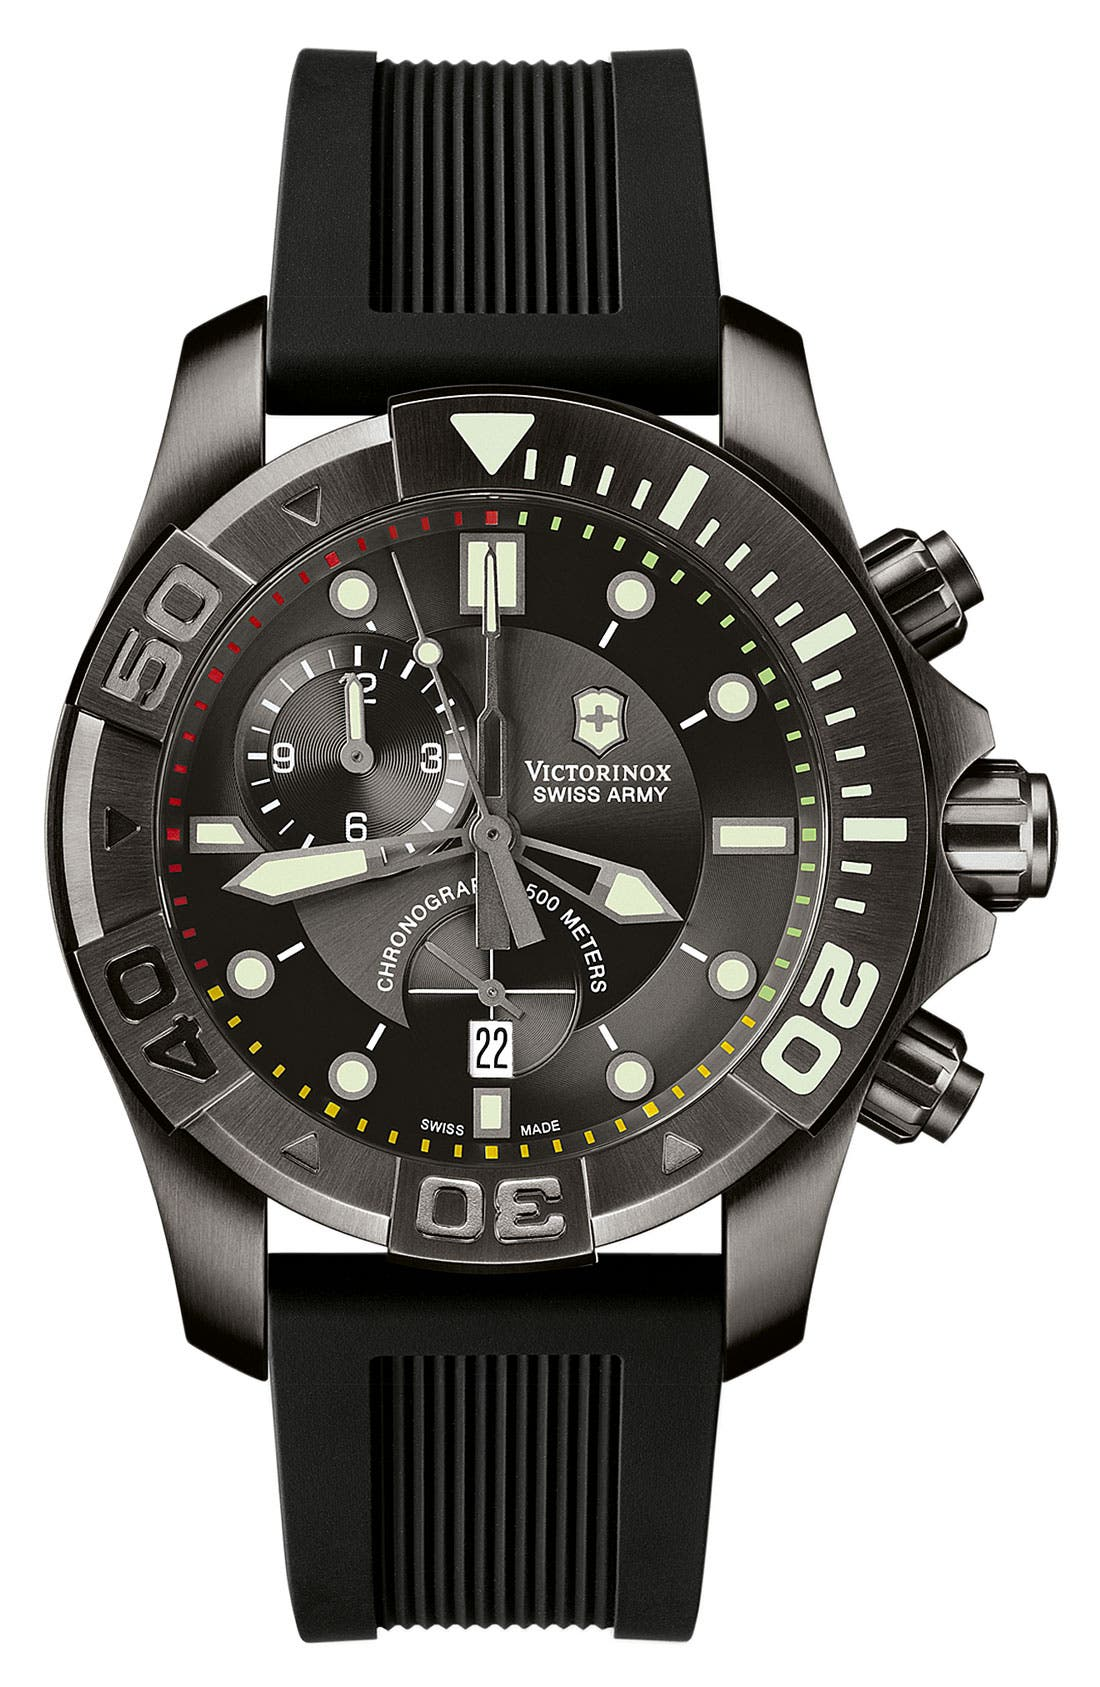 Alternate Image 1 Selected - Victorinox Swiss Army® 'Dive Master' Chronograph Watch, 43mm